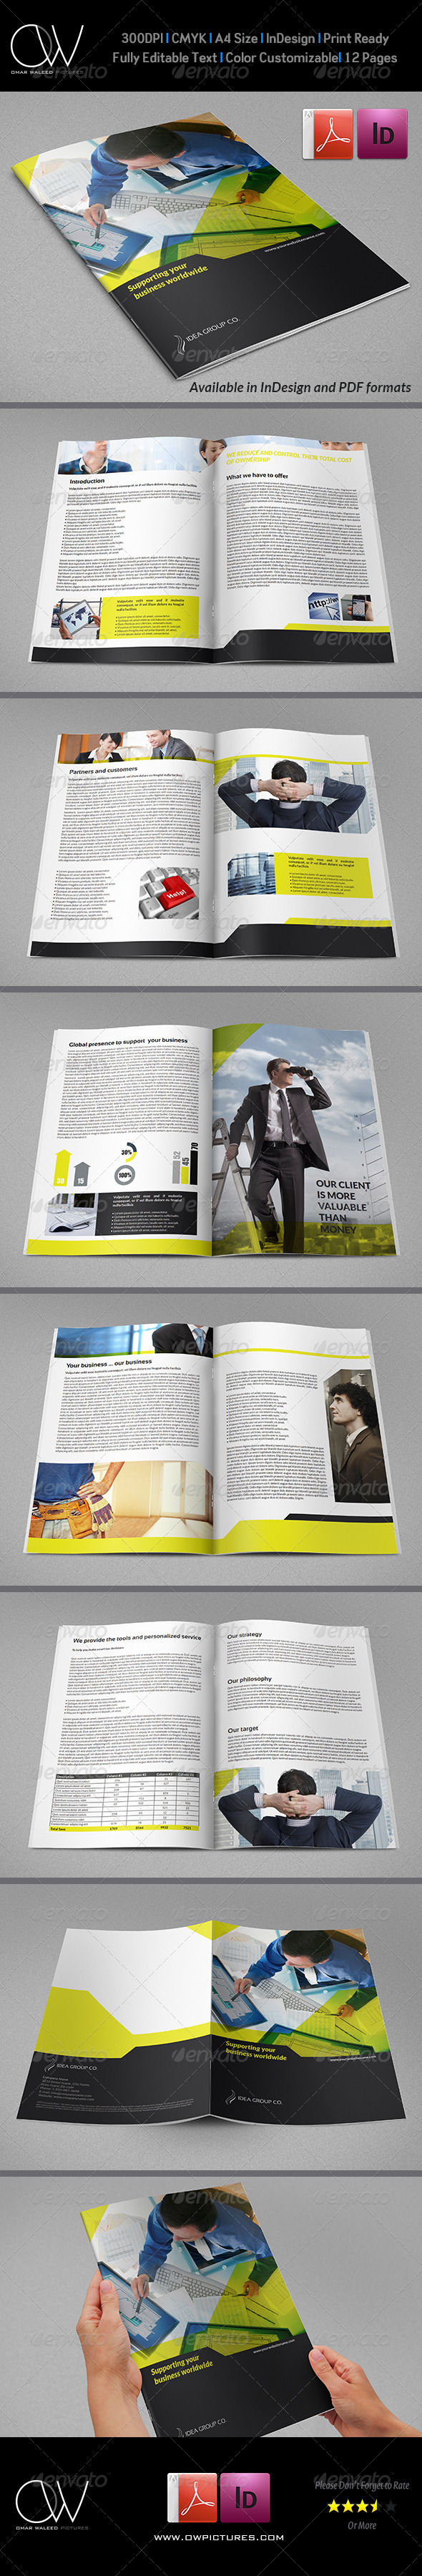 GraphicRiver Corporate Brochure Template Vol.23 12 Pages 6745412